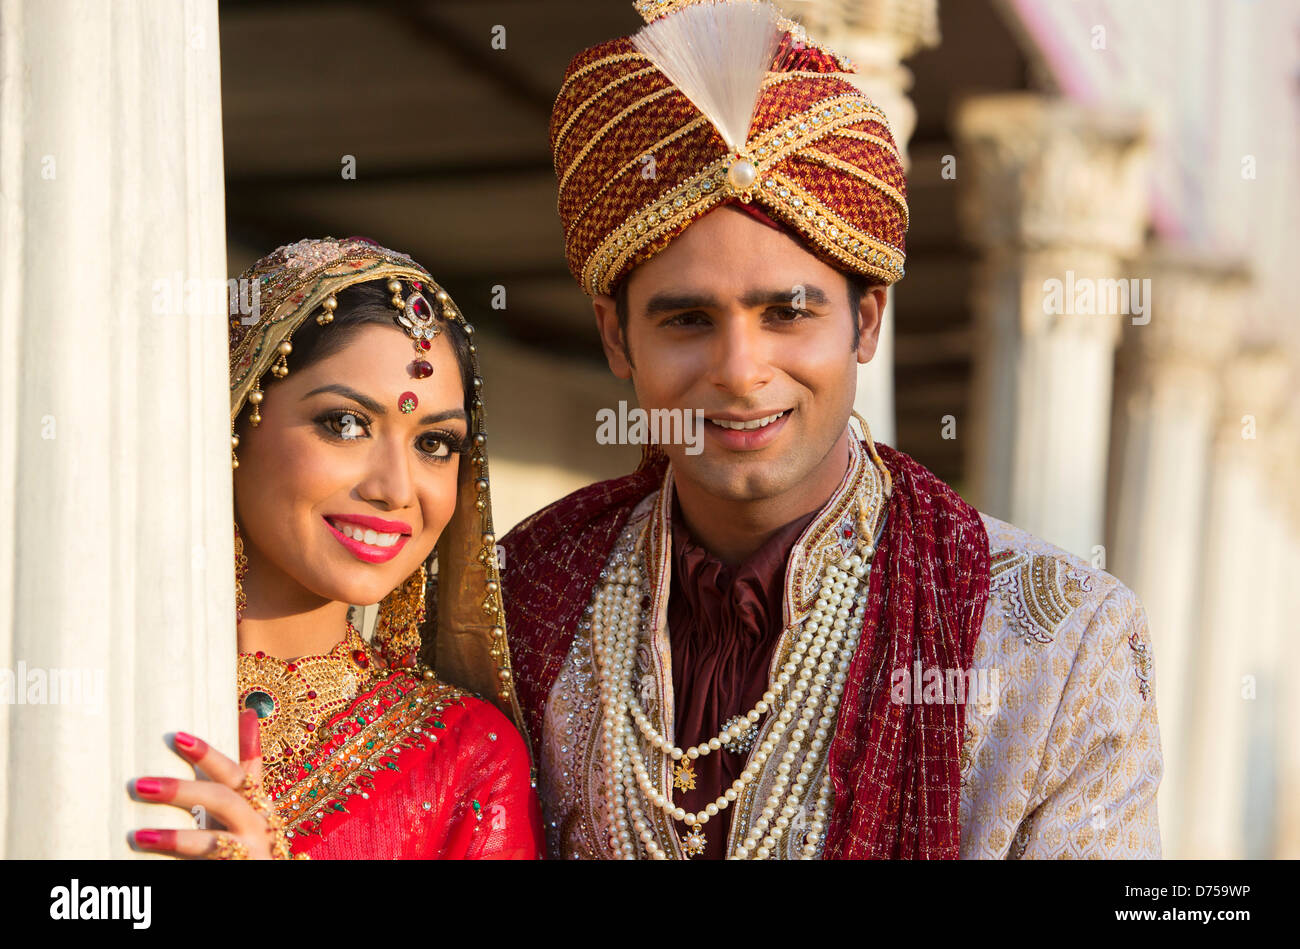 f1b42b2983 Indian bride and groom in traditional wedding dress Stock Photo ...